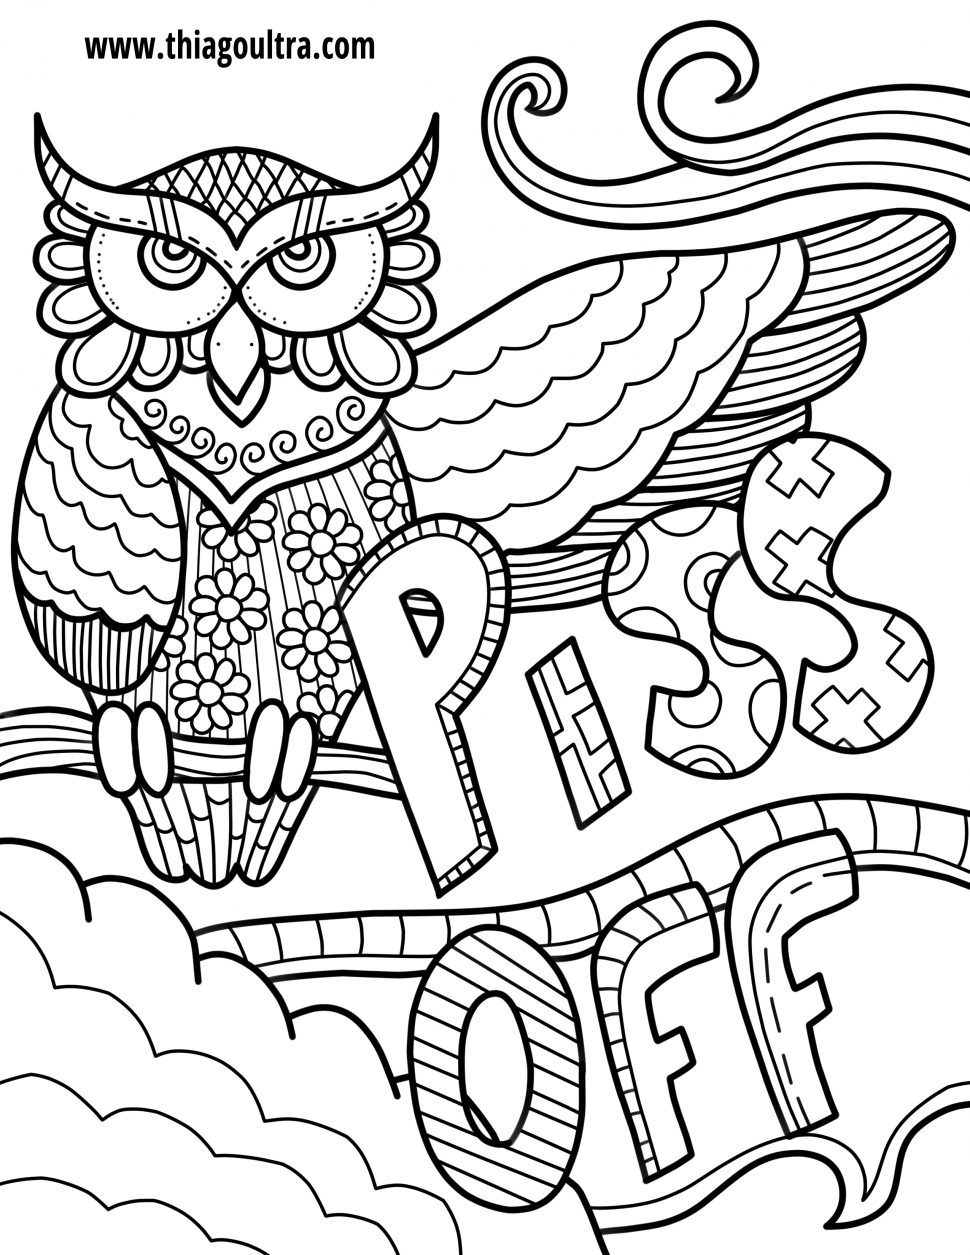 Word Coloring Pages Free Download Best Word Coloring Pages On